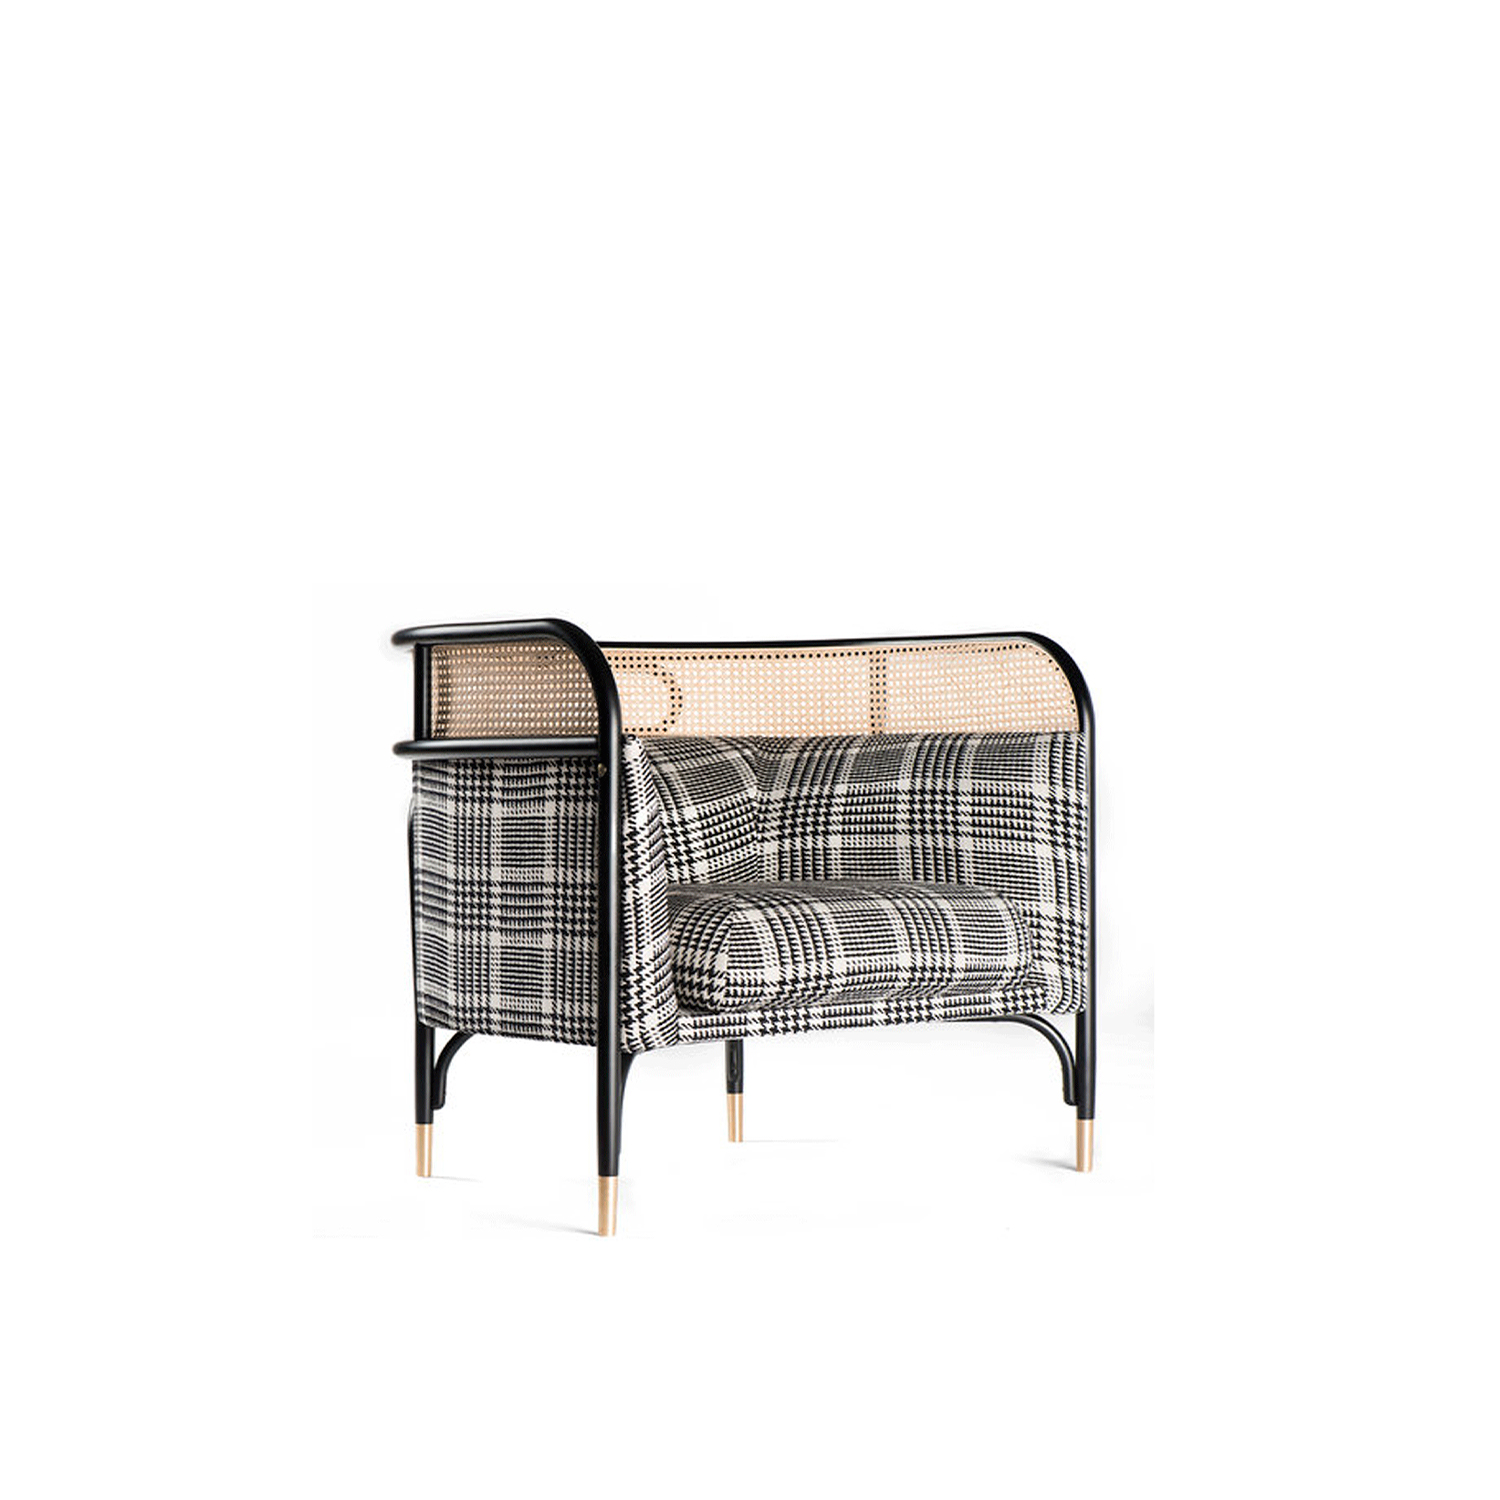 Targa Lounge Chair - This lounge chair will add a striking accent to a classic or contemporary decor. Its enveloping structure has a frame in steam-bent beechwood with a top layer covered in Viennese straw. The interior of the chair, welcoming and intimate, is cushioned and upholstered with a refined tartan pattern that will complement any colour palette.